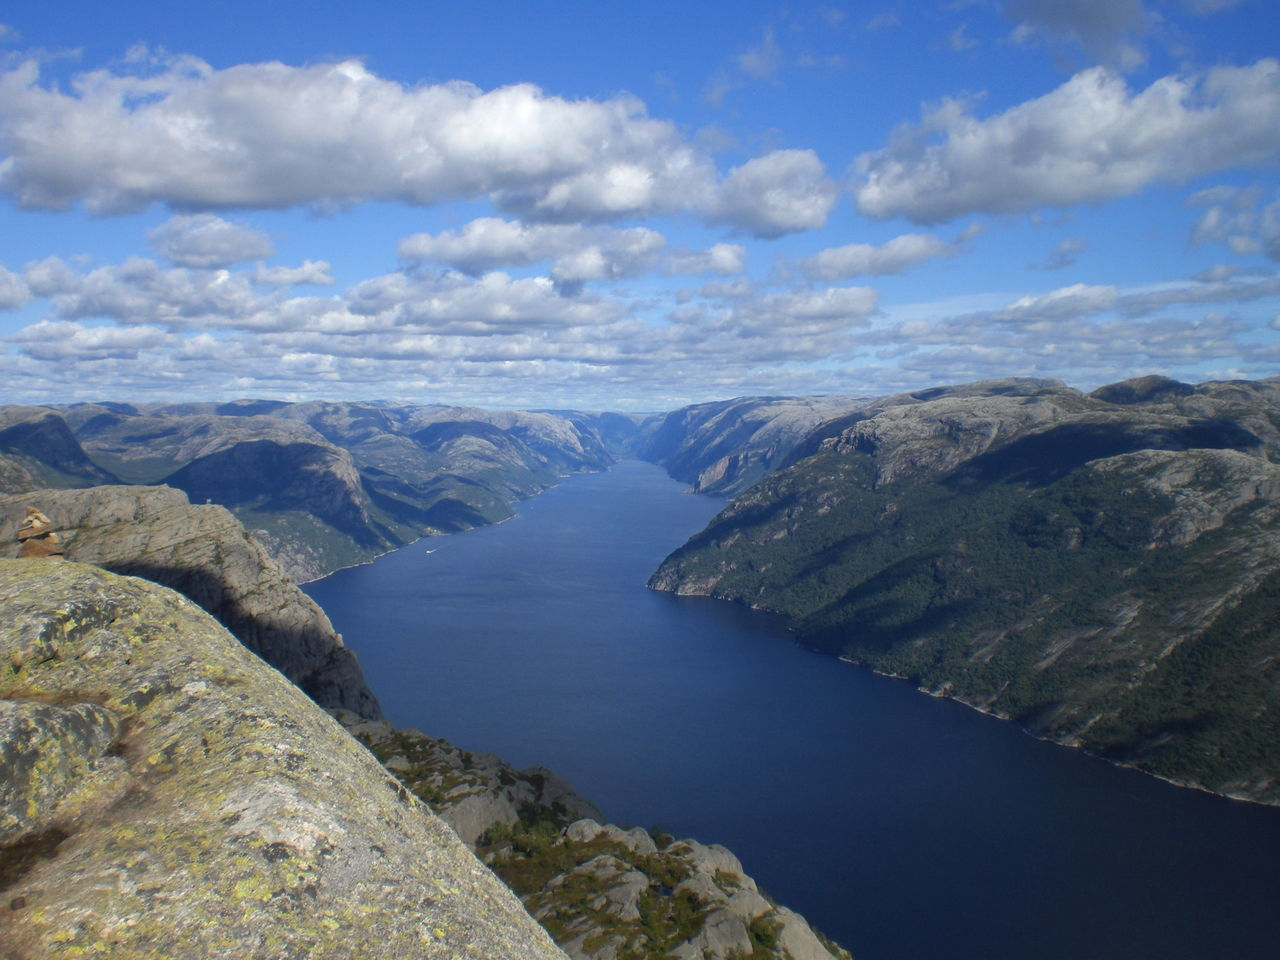 Lysefjord from Preikestolen Beauty In Nature Cloud - Sky Coastline Day Europe Fjord Holidays Horizon Over Water Landscape Landscape_Collection Lysefjord Mountains Nature No People Norway Outdoors Preikestolen Scenics Sea Sky Traveling Water